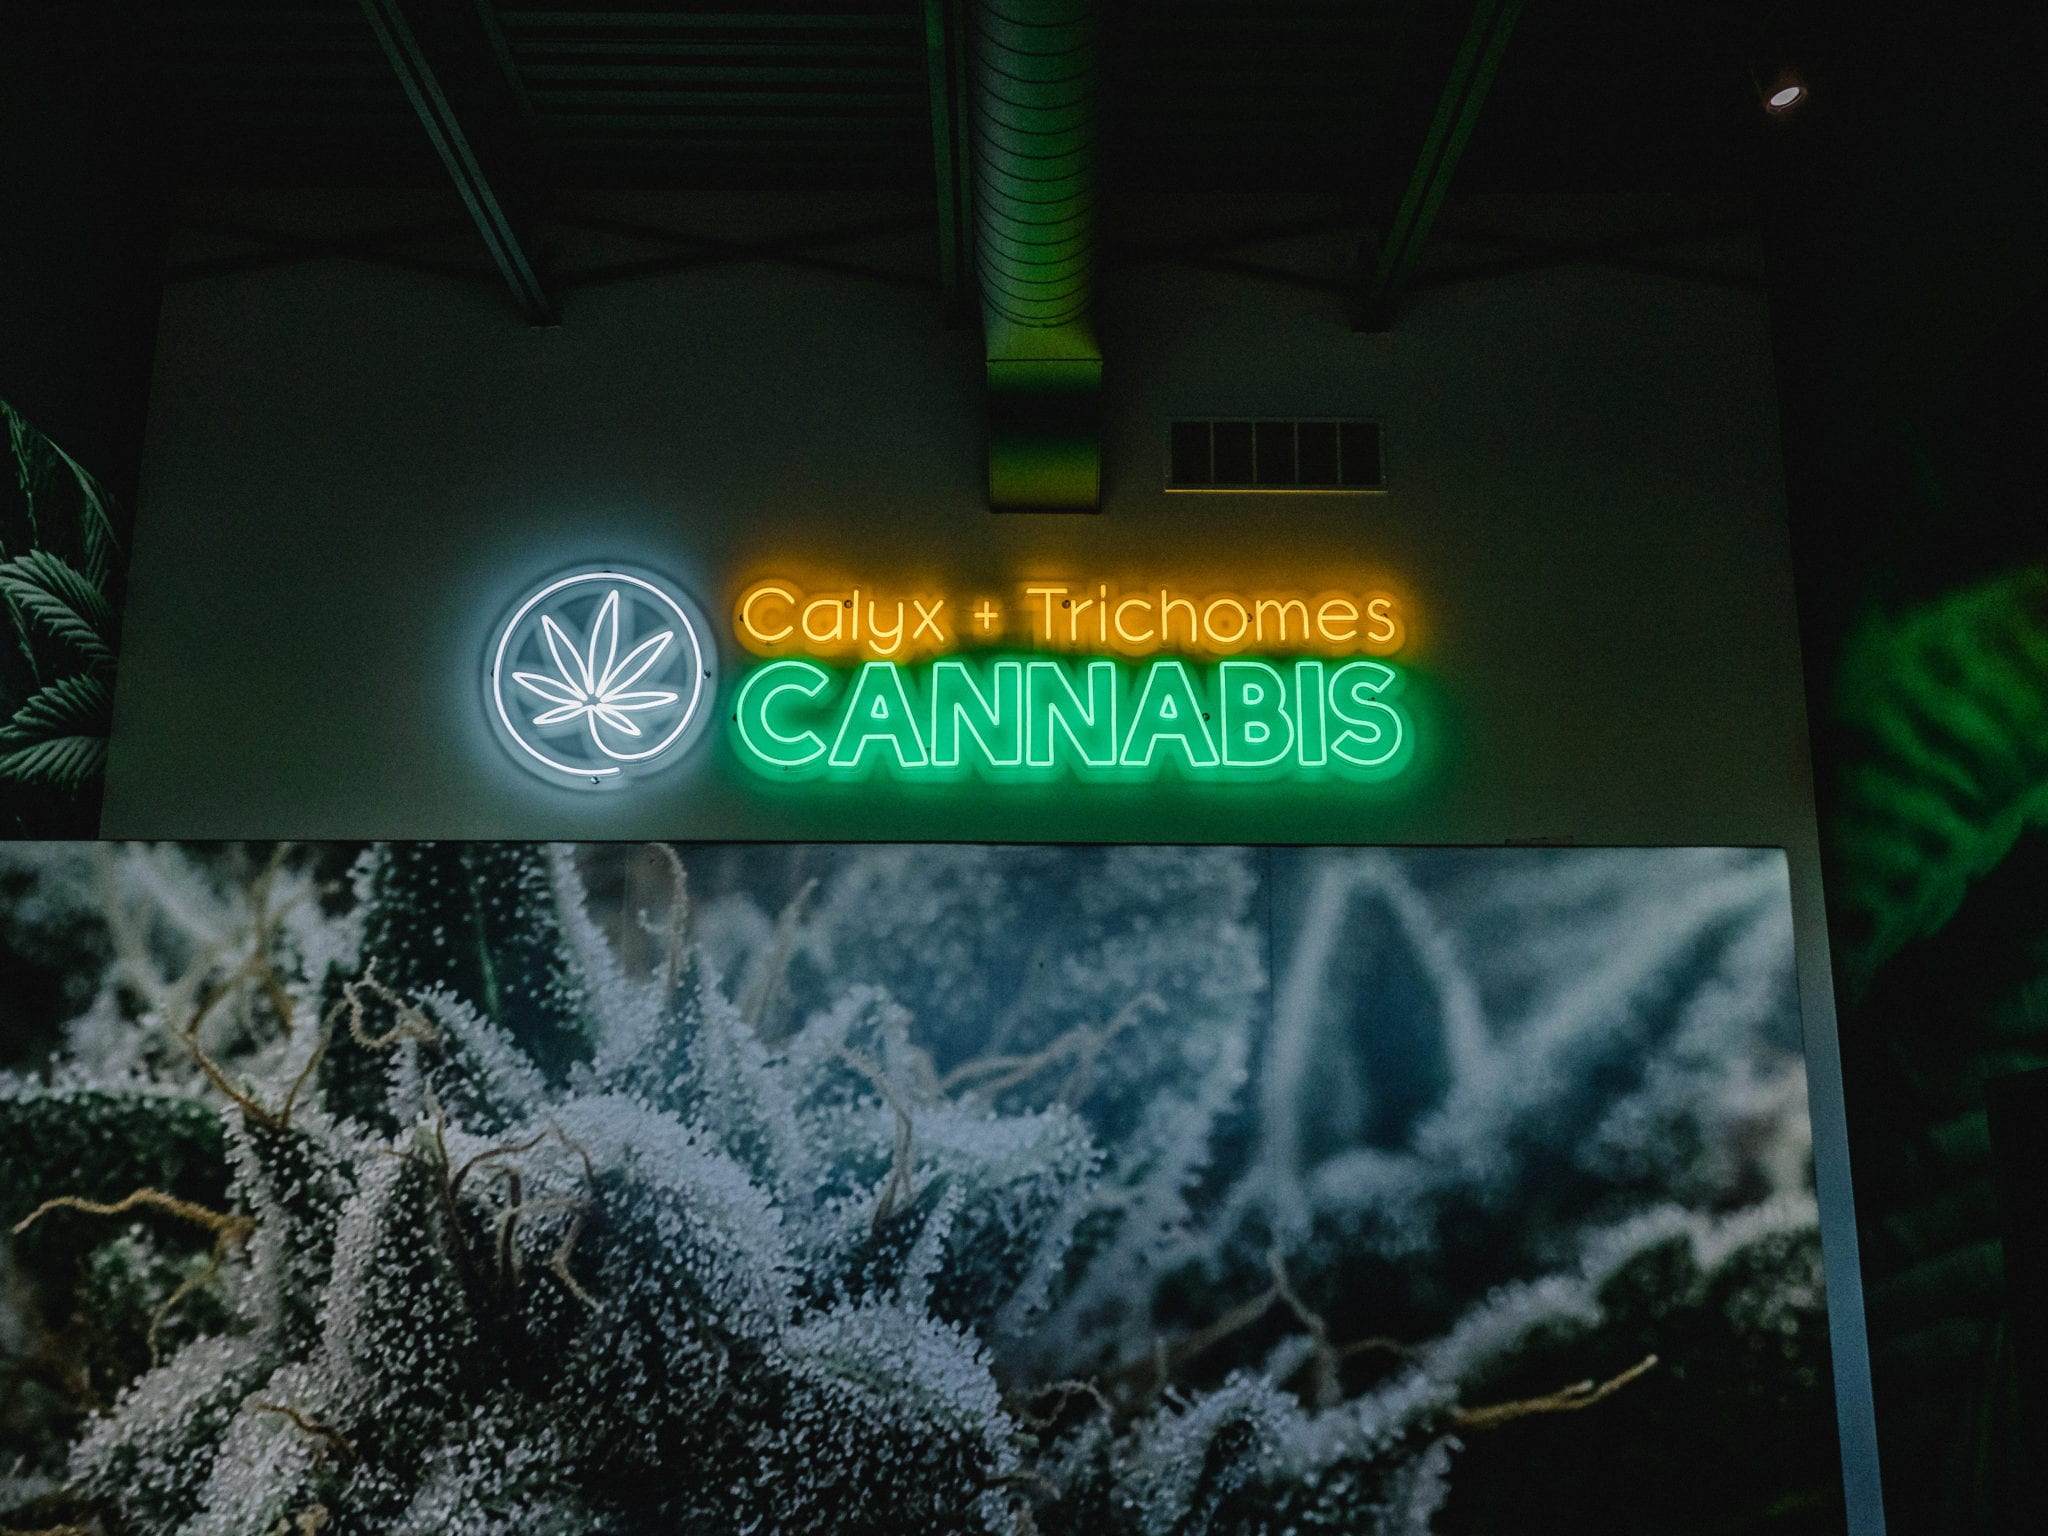 Behold, a weed store that looks like it actually sells weed